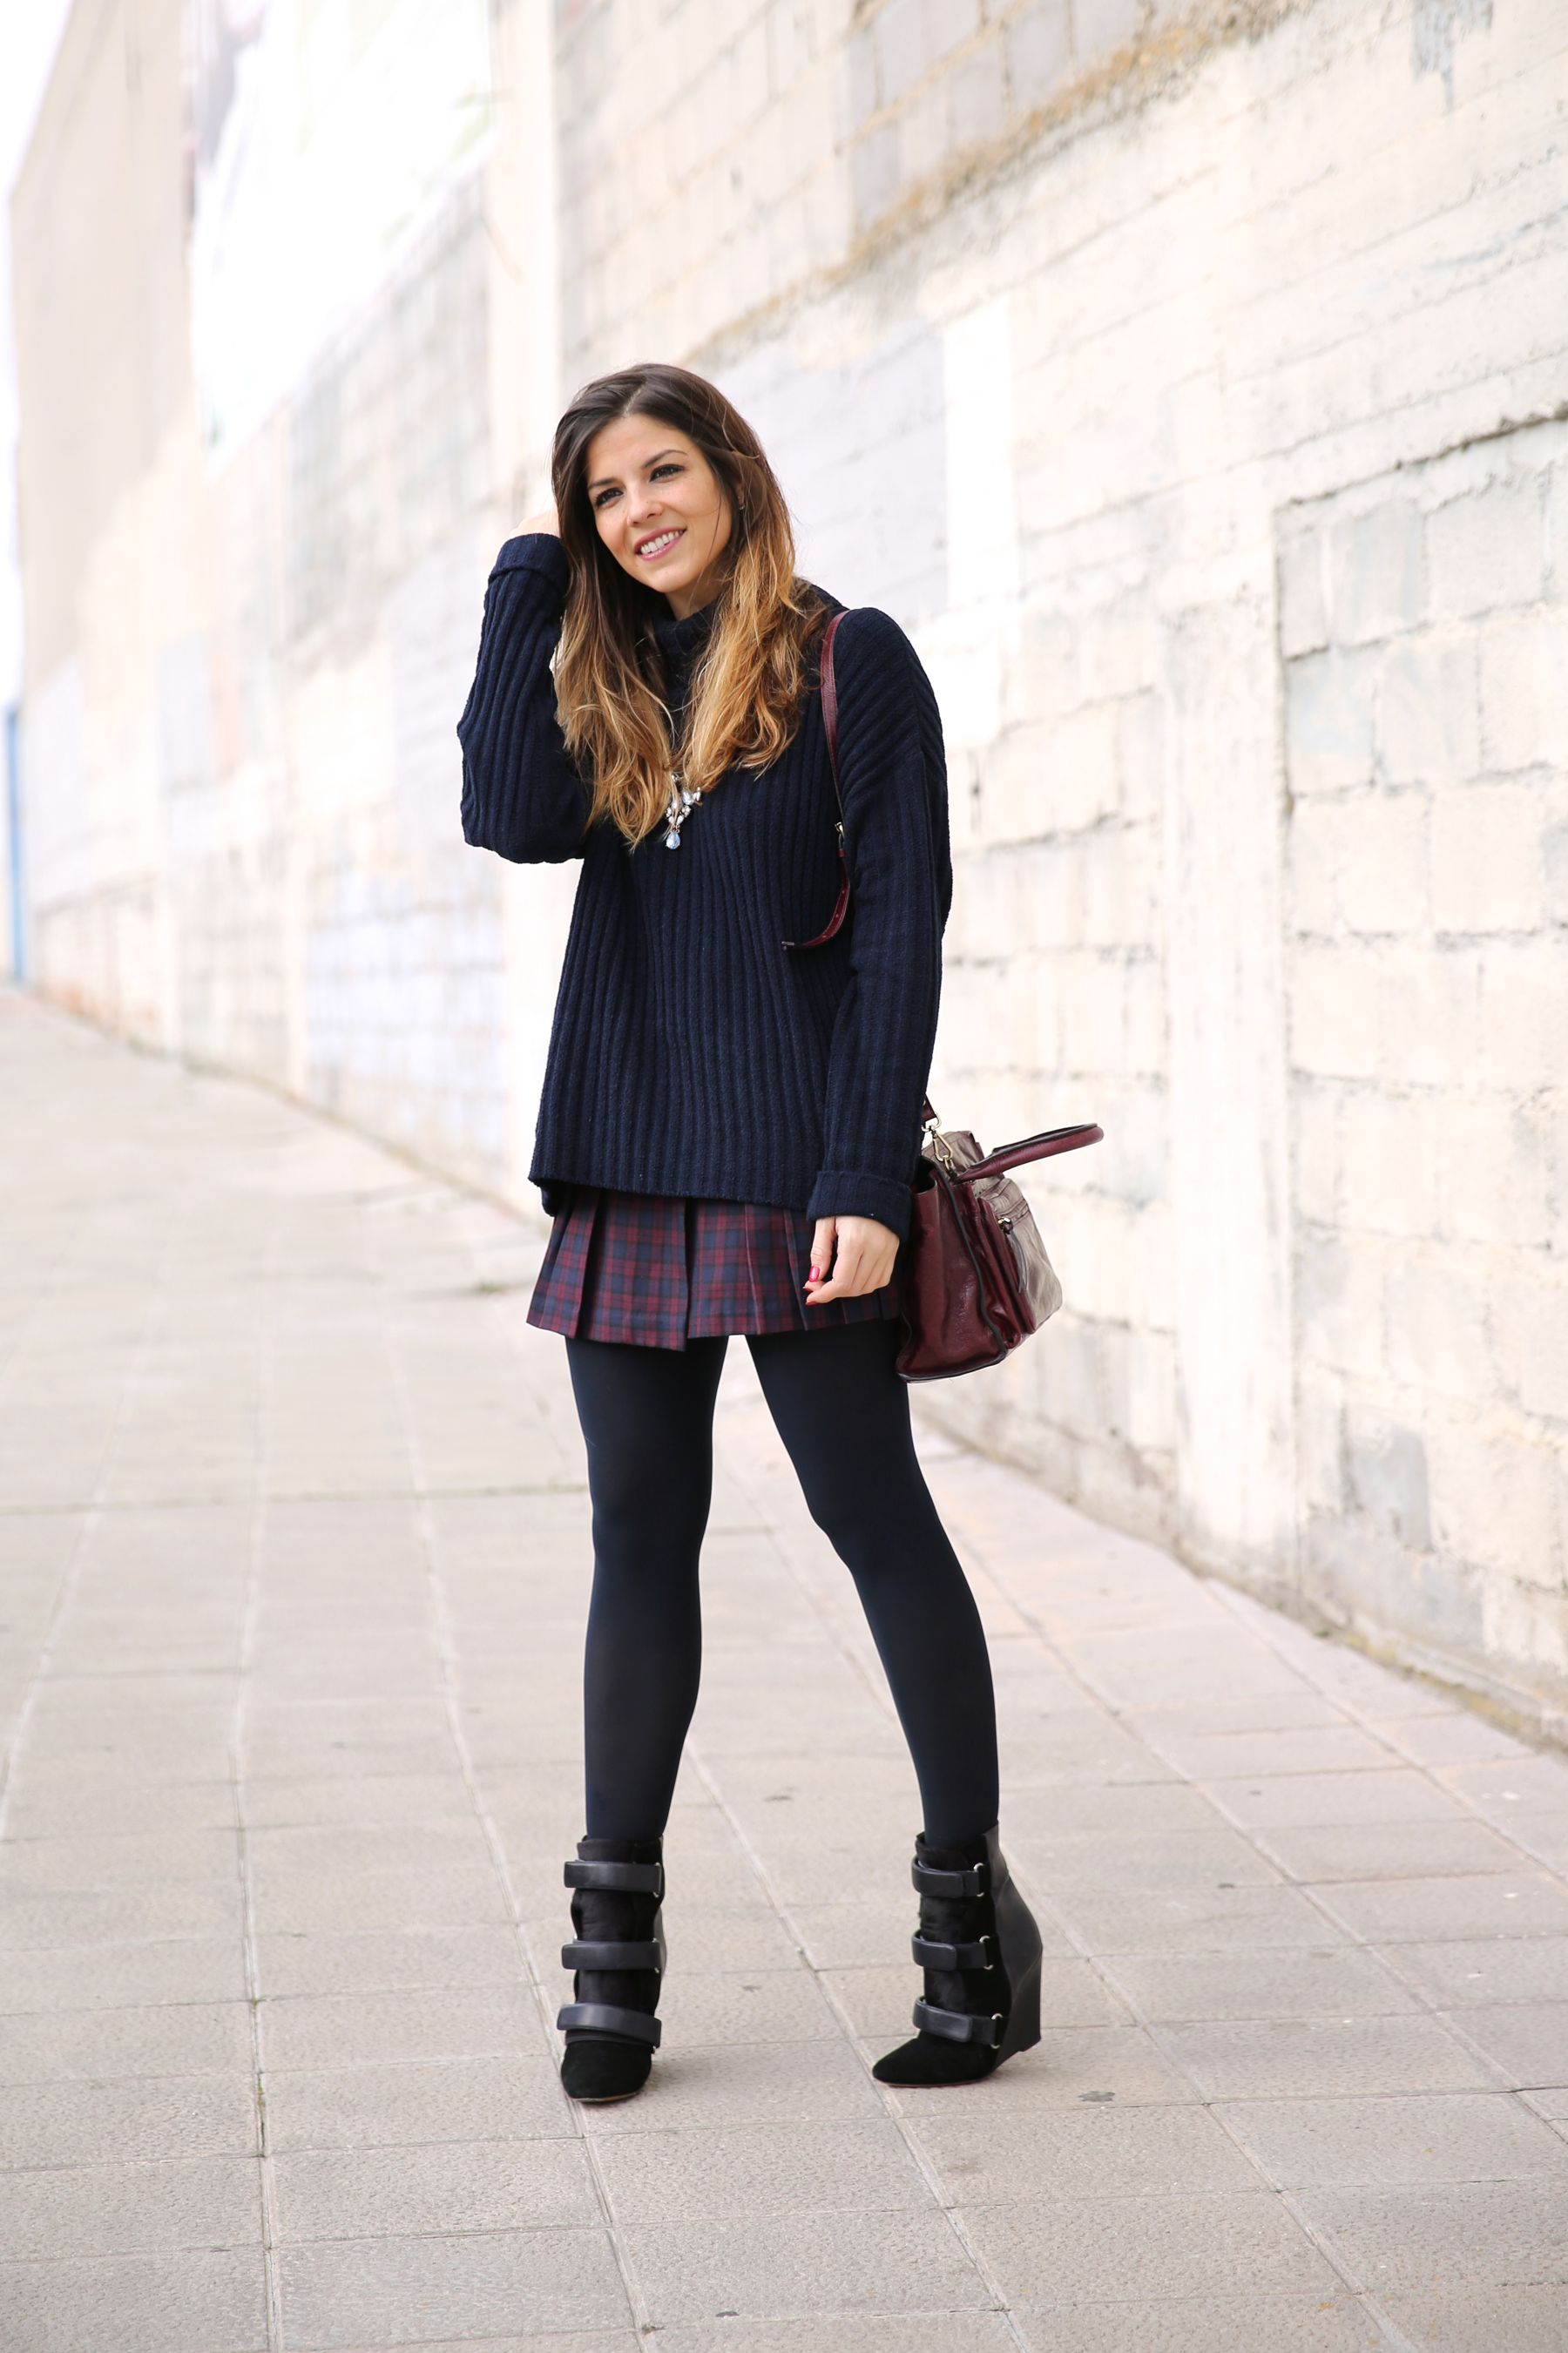 Natalia Cabezas is wearing a pleated plaid skirt from Vila Clothes